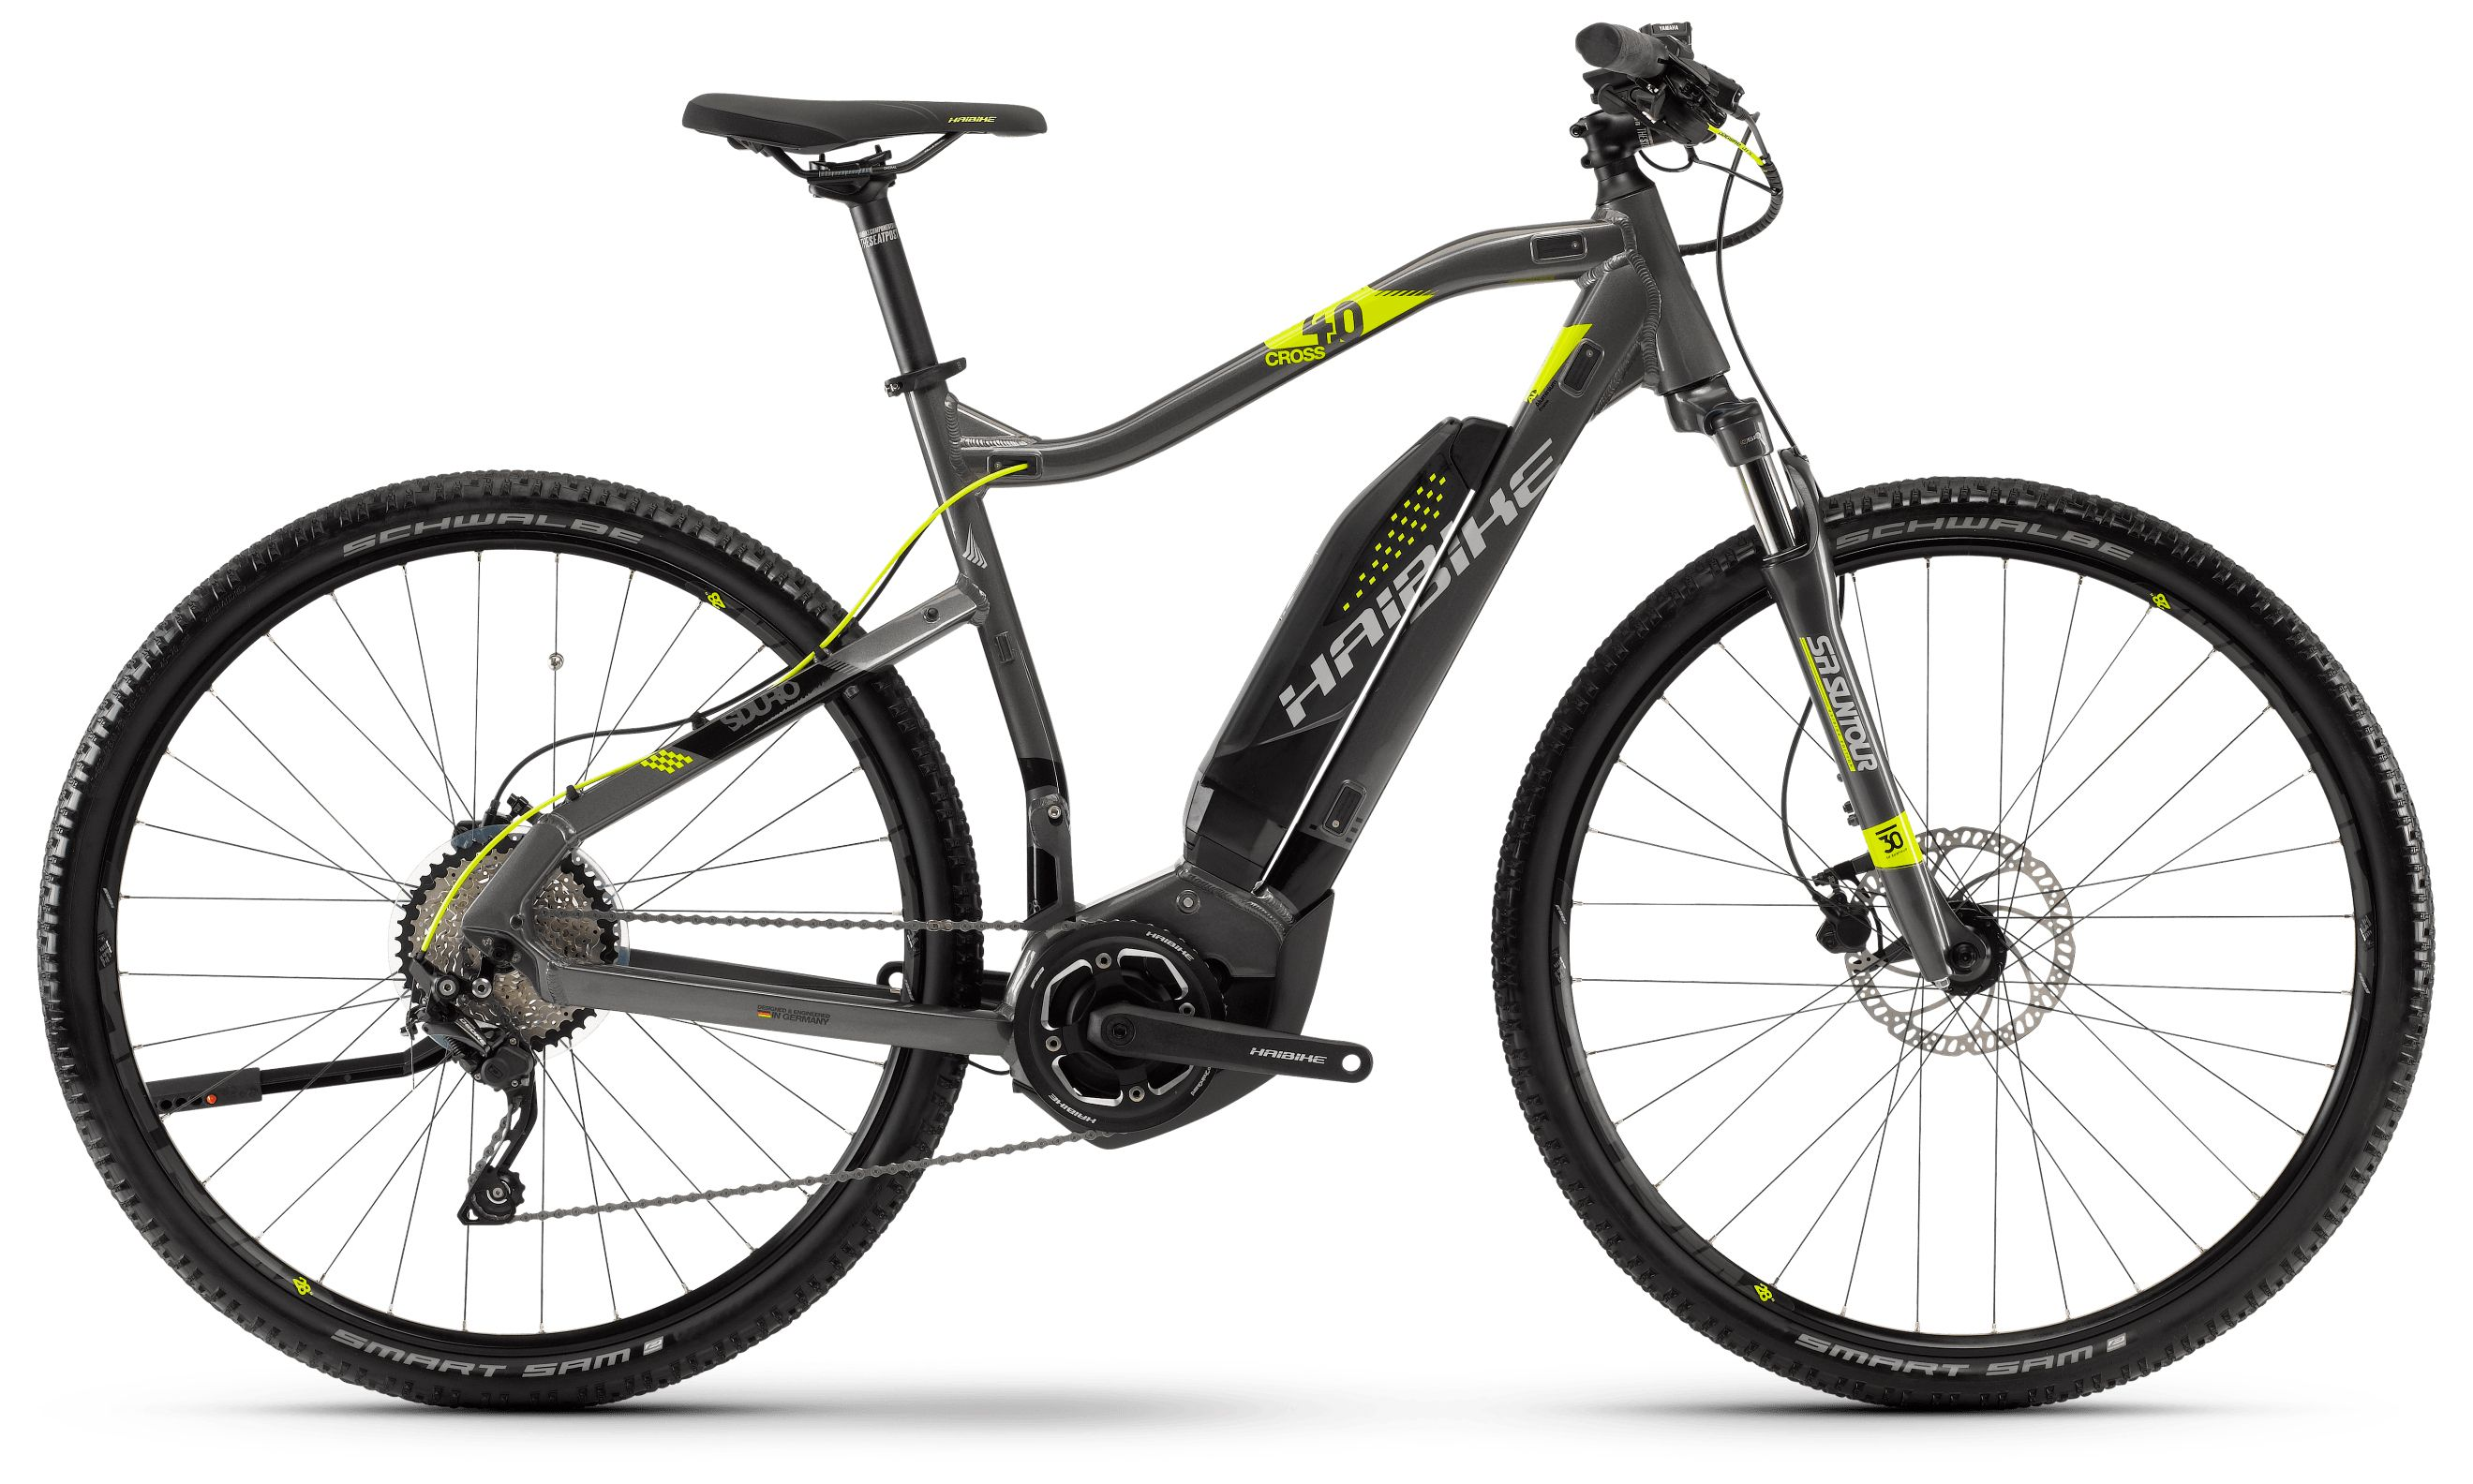 Велосипед Haibike Sduro Cross 4.0 men 400Wh 10s Deore 2018,  Городские  - артикул:288646